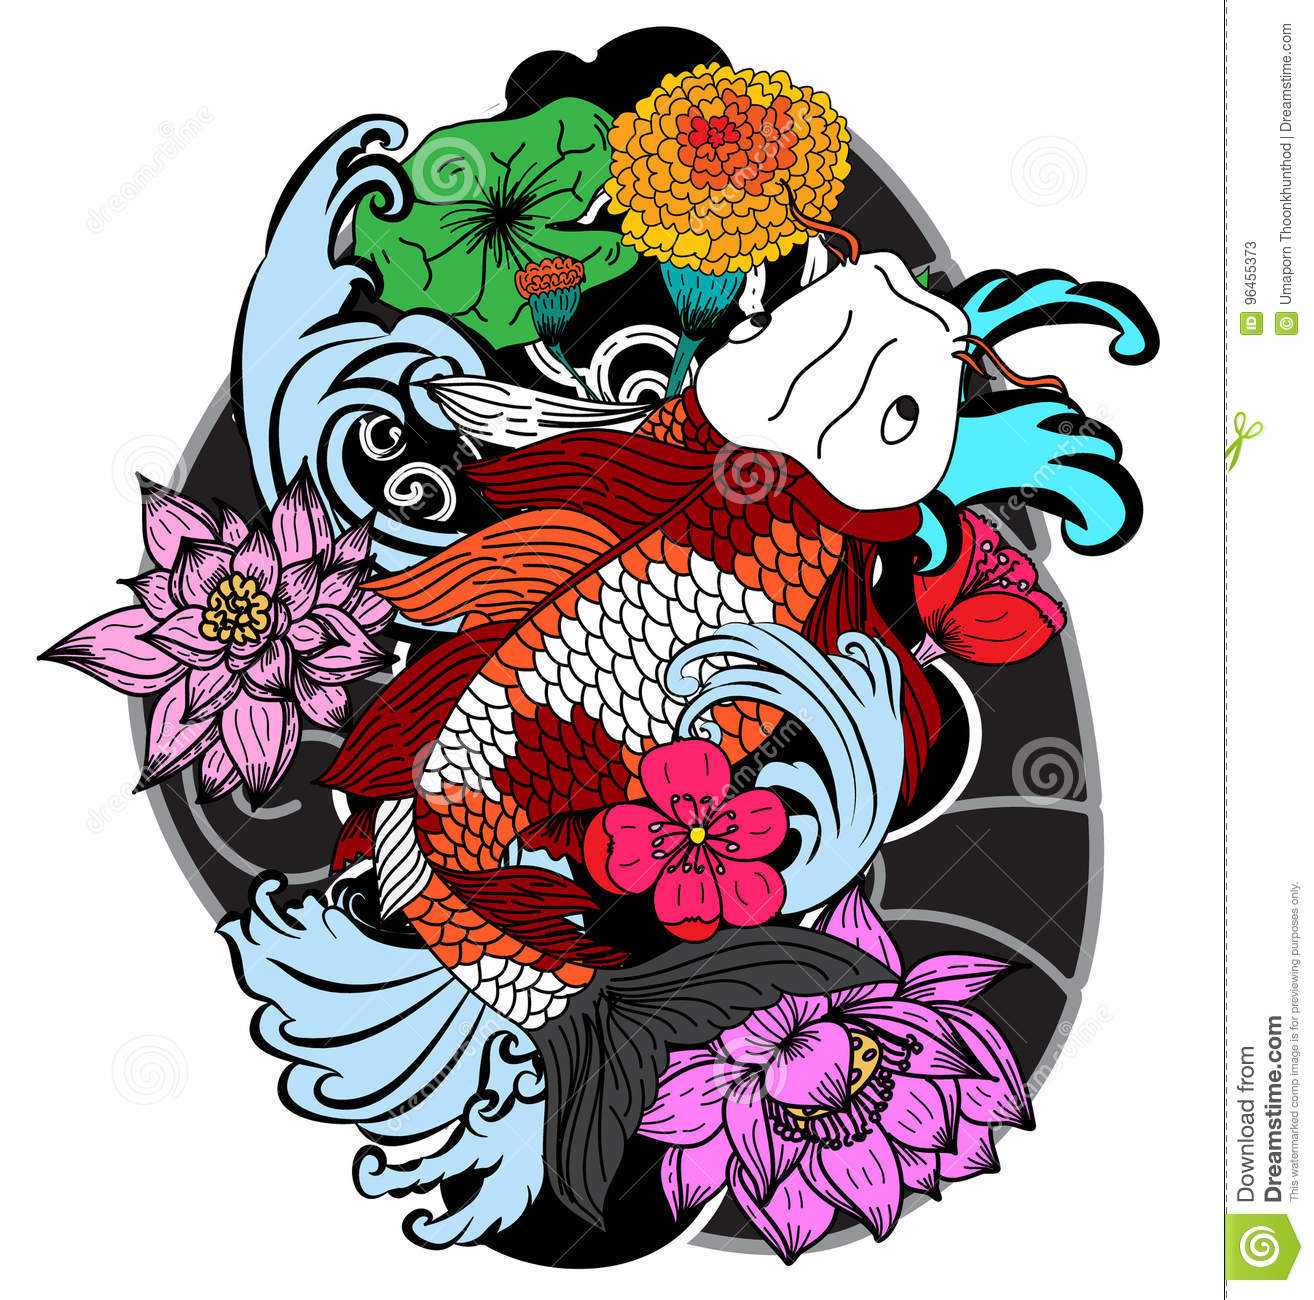 Colorful koi fish and flower stock vector illustration of japanese download colorful koi fish and flower stock vector illustration of japanese blossom 96455373 izmirmasajfo